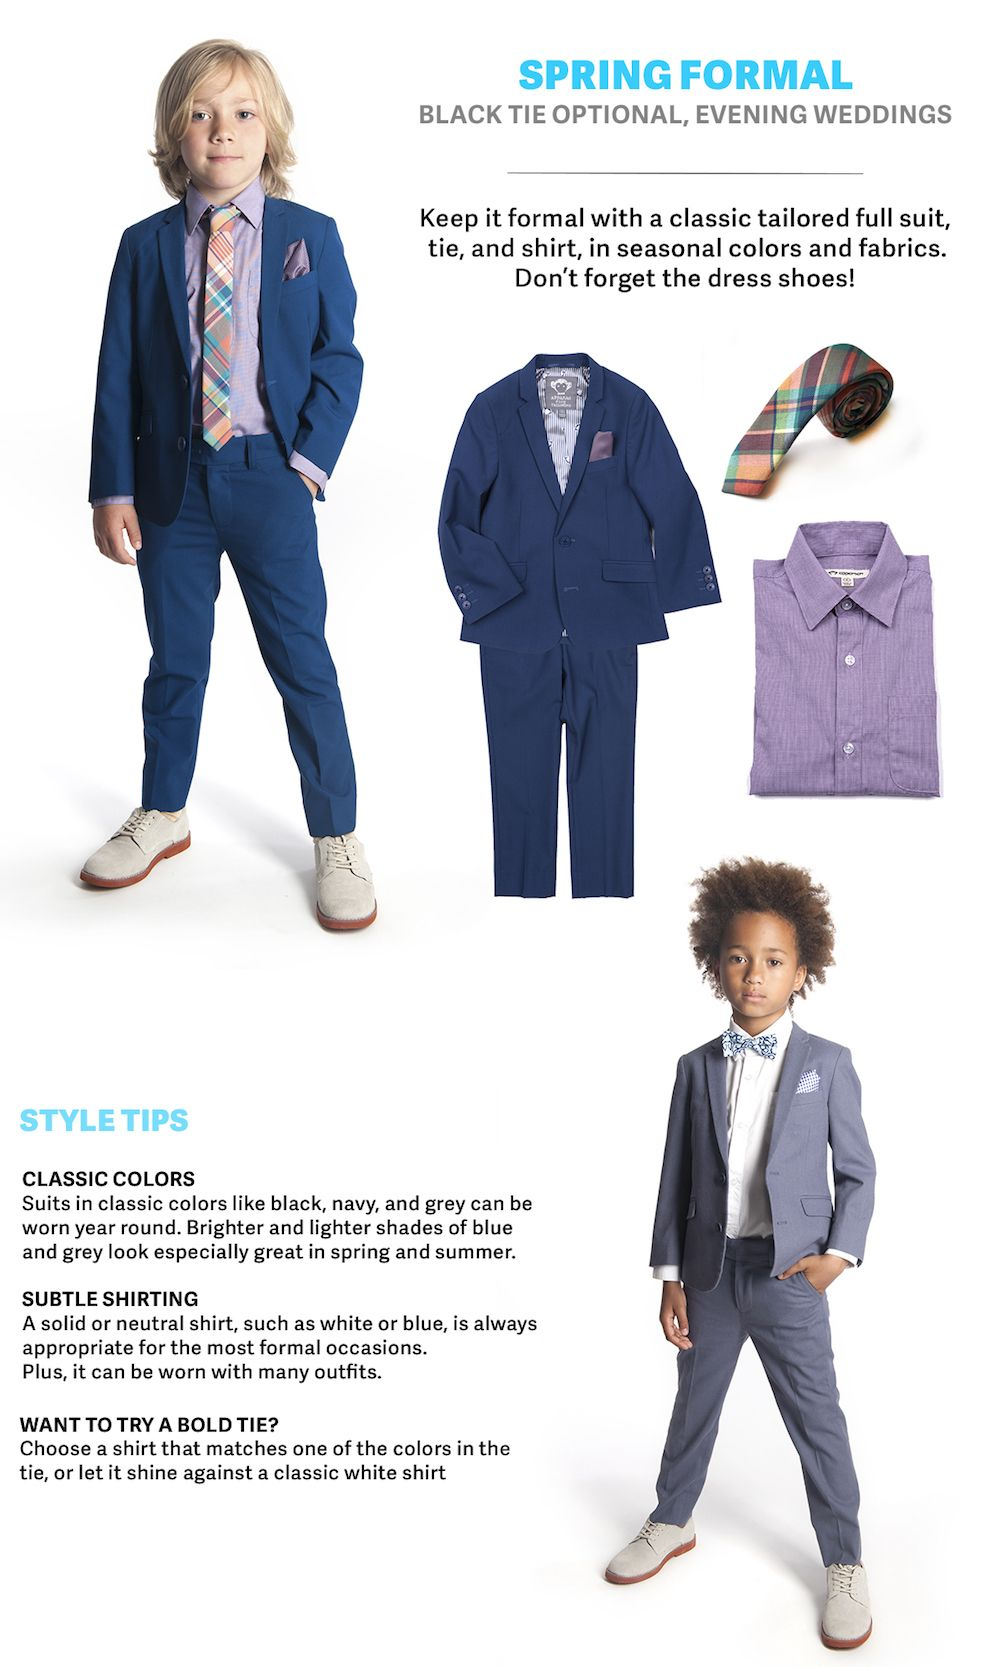 e50ef31e376b How to dress for spring and summer special occasions